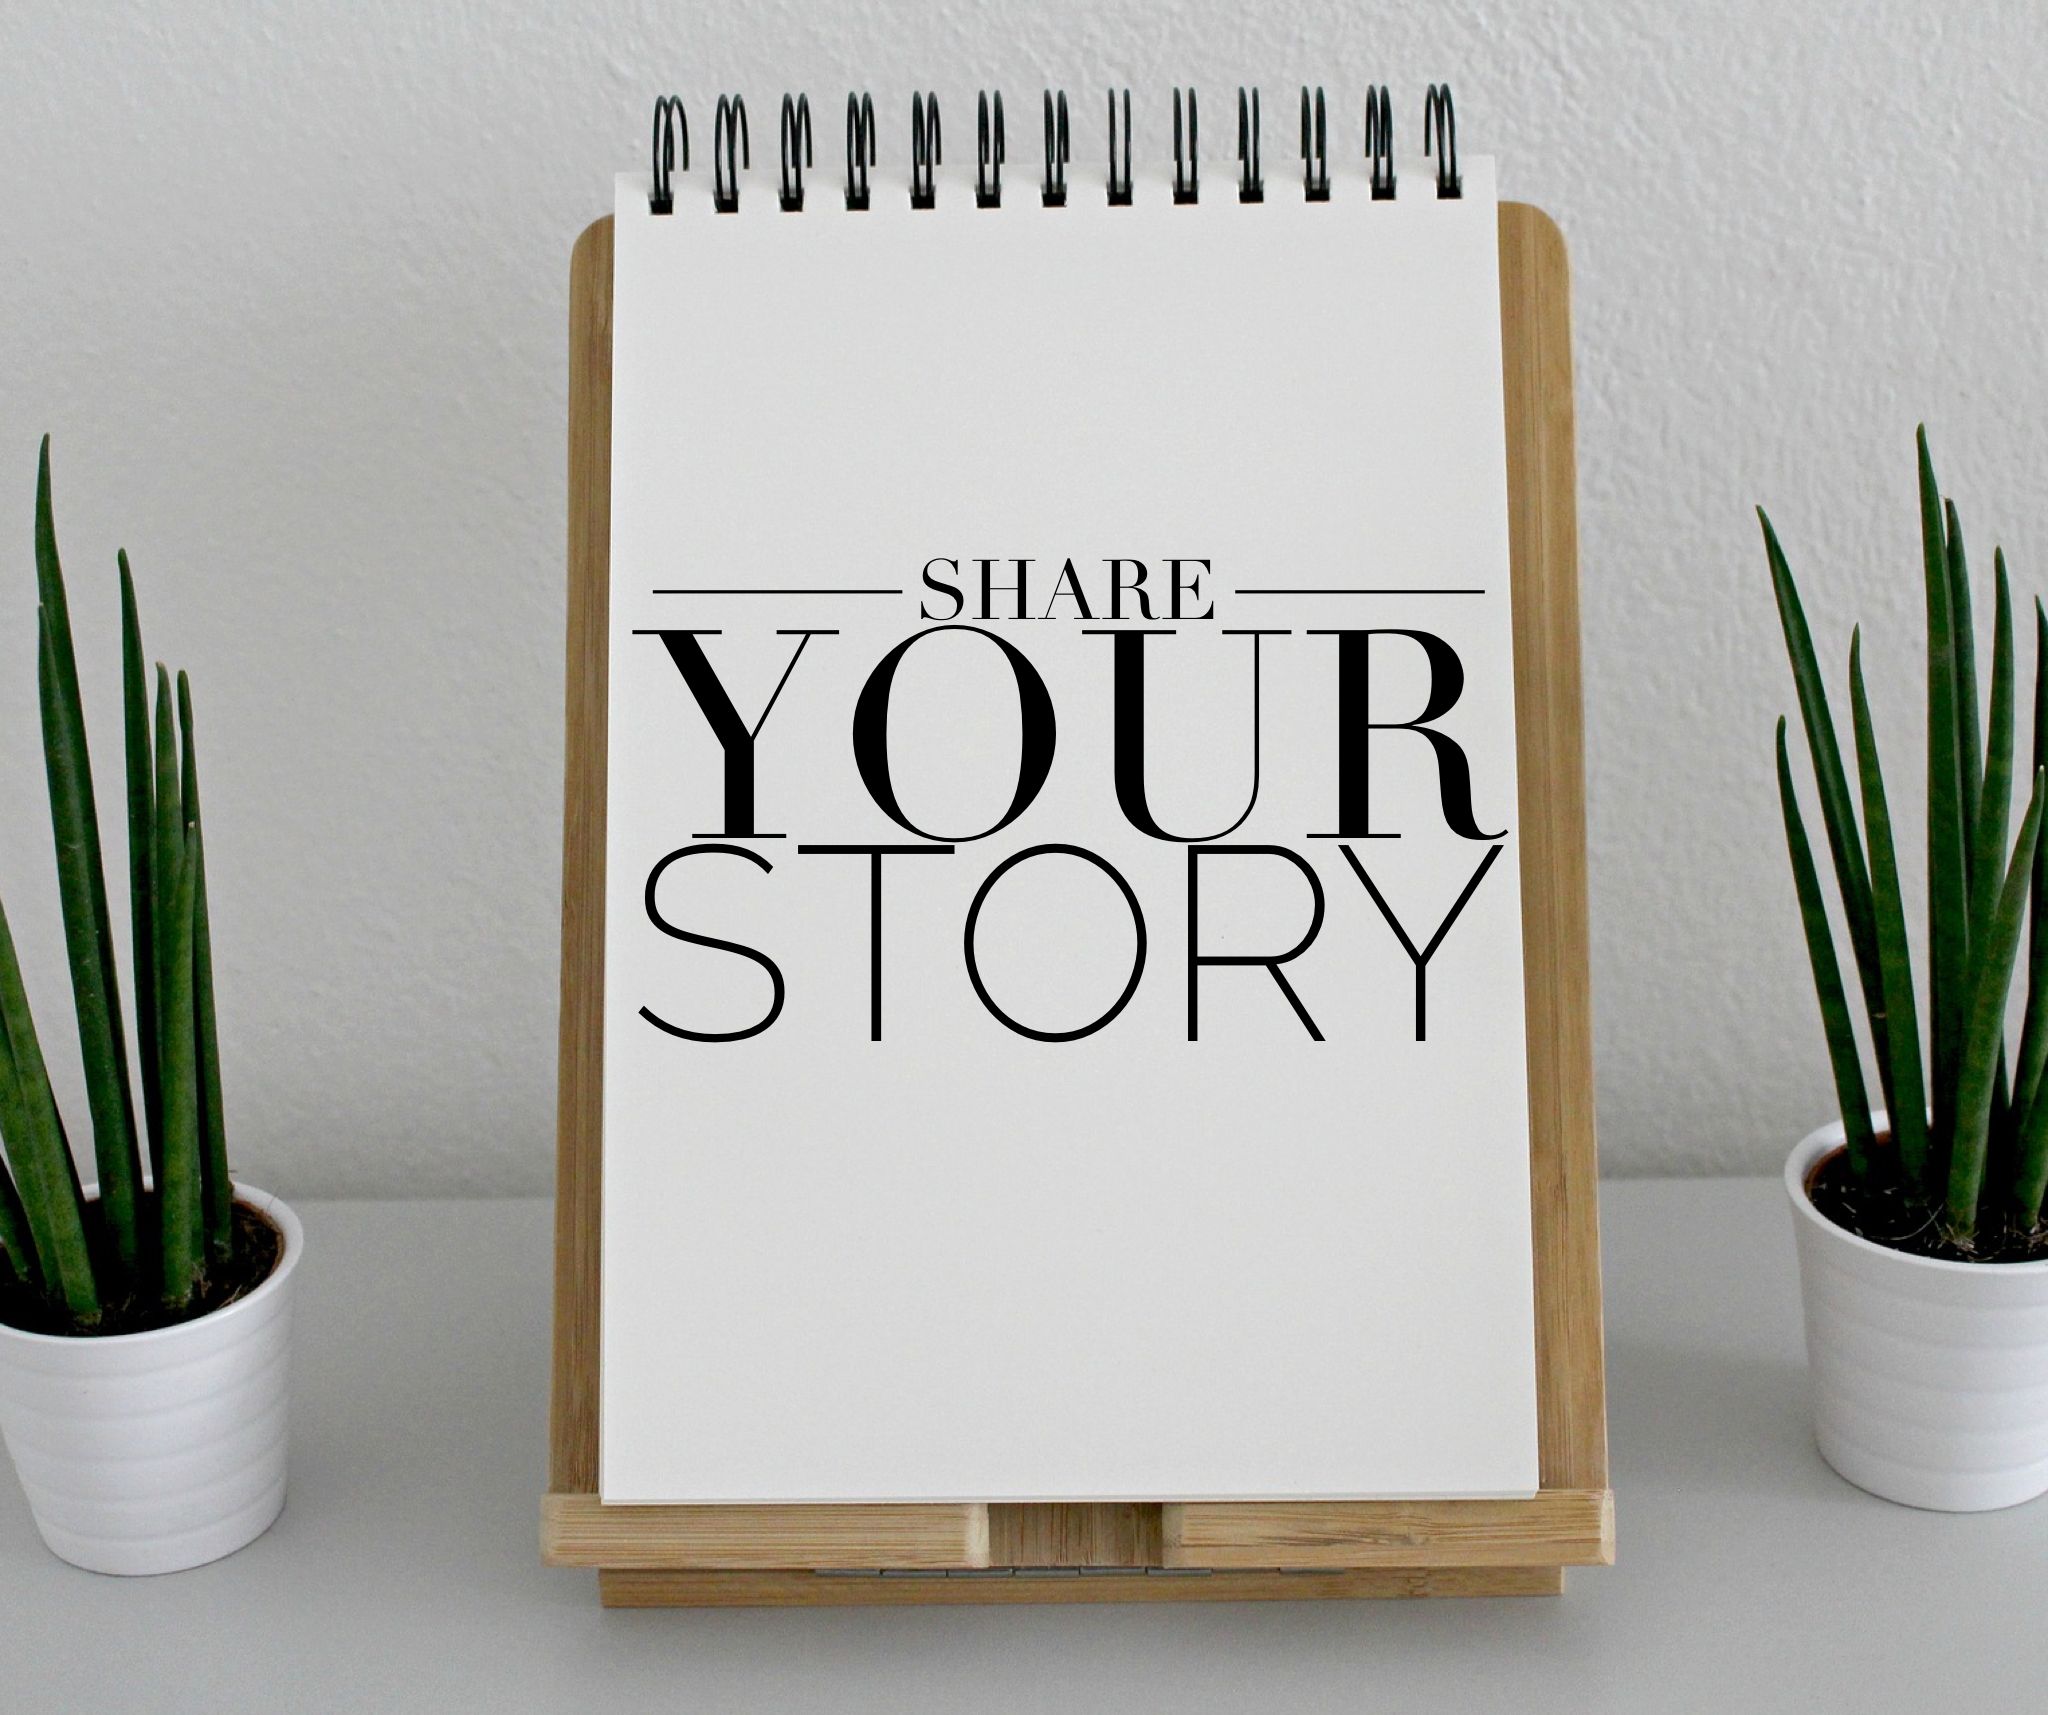 How You Can Share Your Story